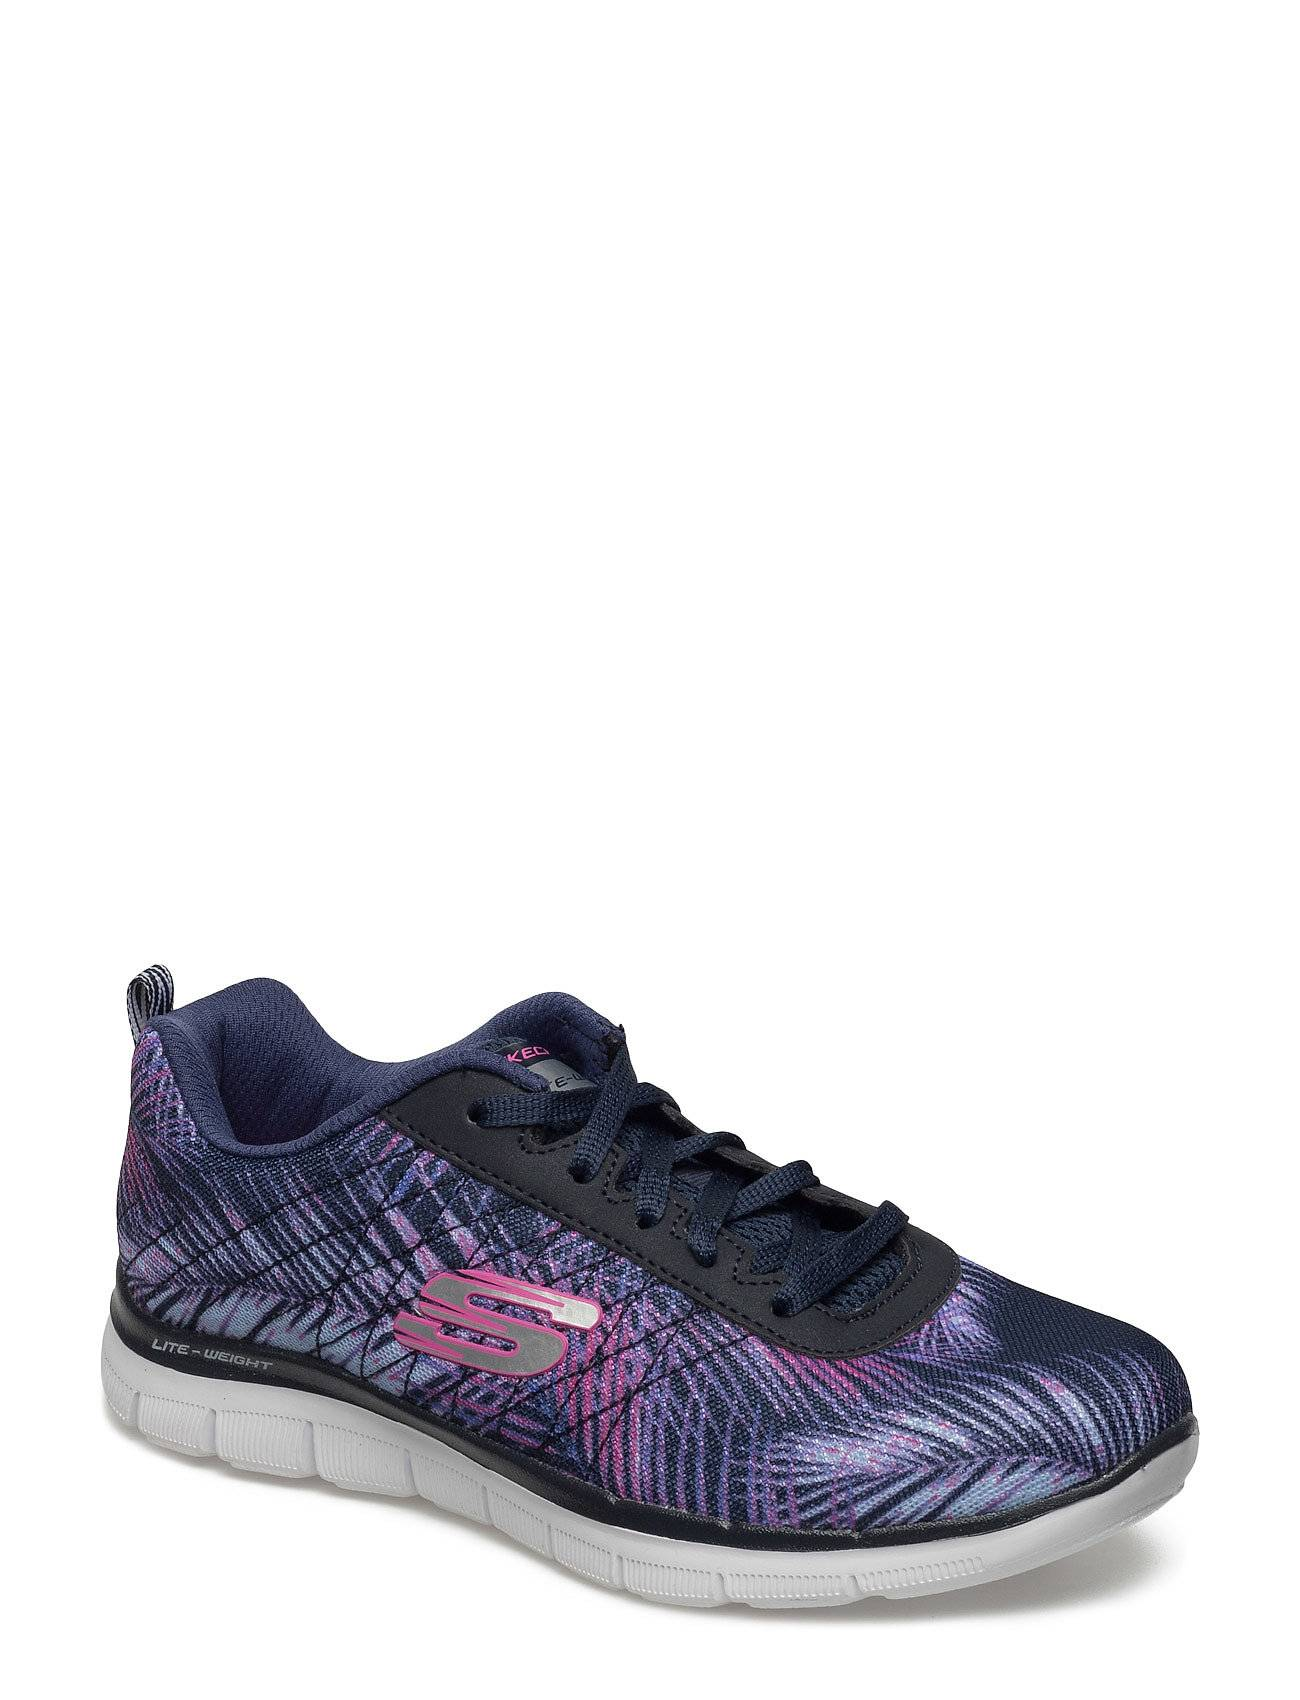 Skechers Girls Skech Appeal 2.0 - Tropical Breeze